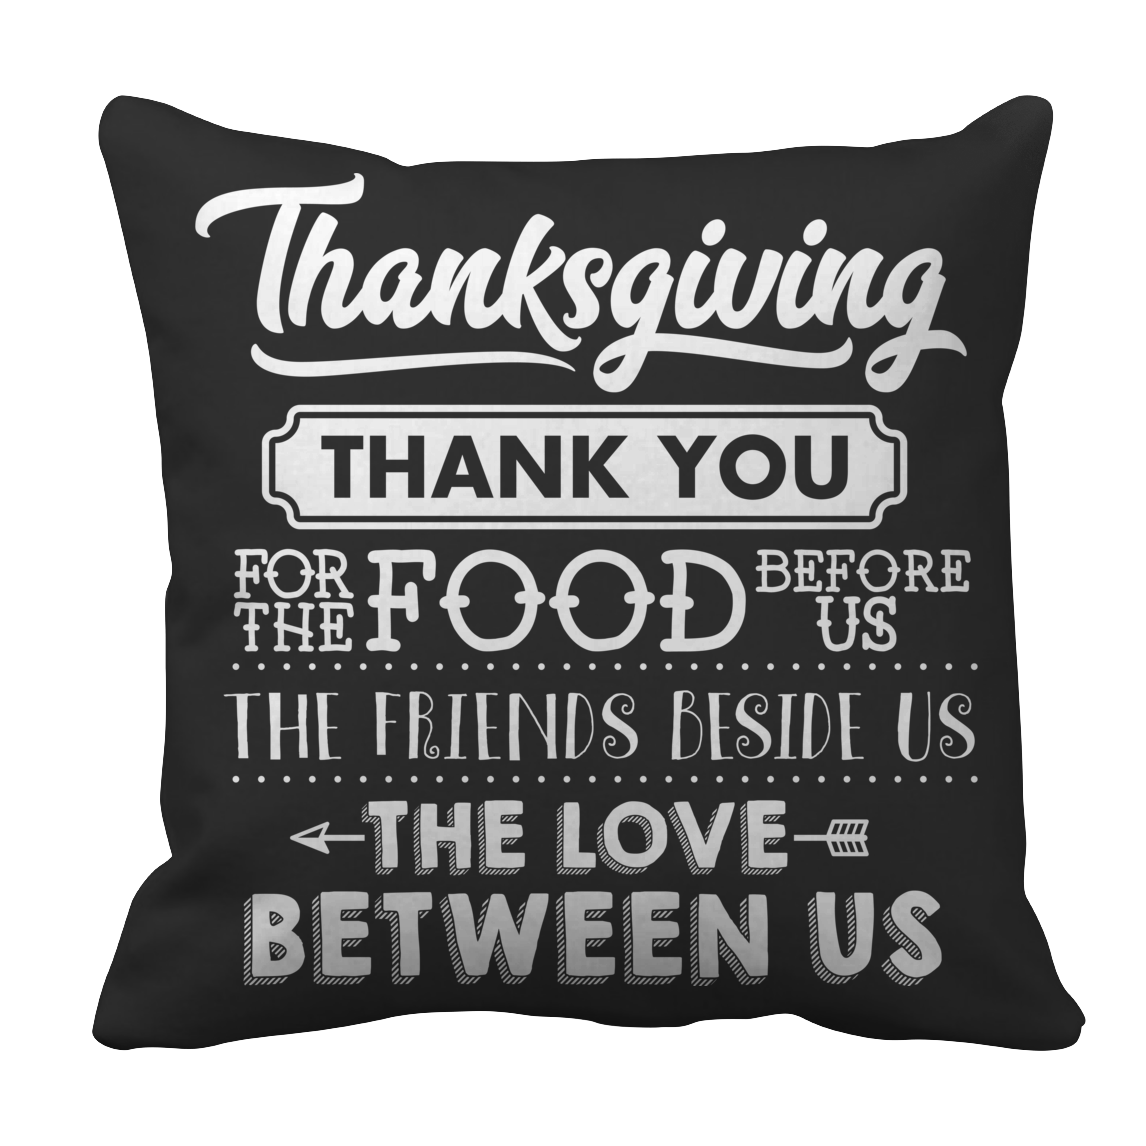 sofa office pillow in pillows for pumpkin letters seat decorative home cover linen thanksgiving item case from decor cushion happy